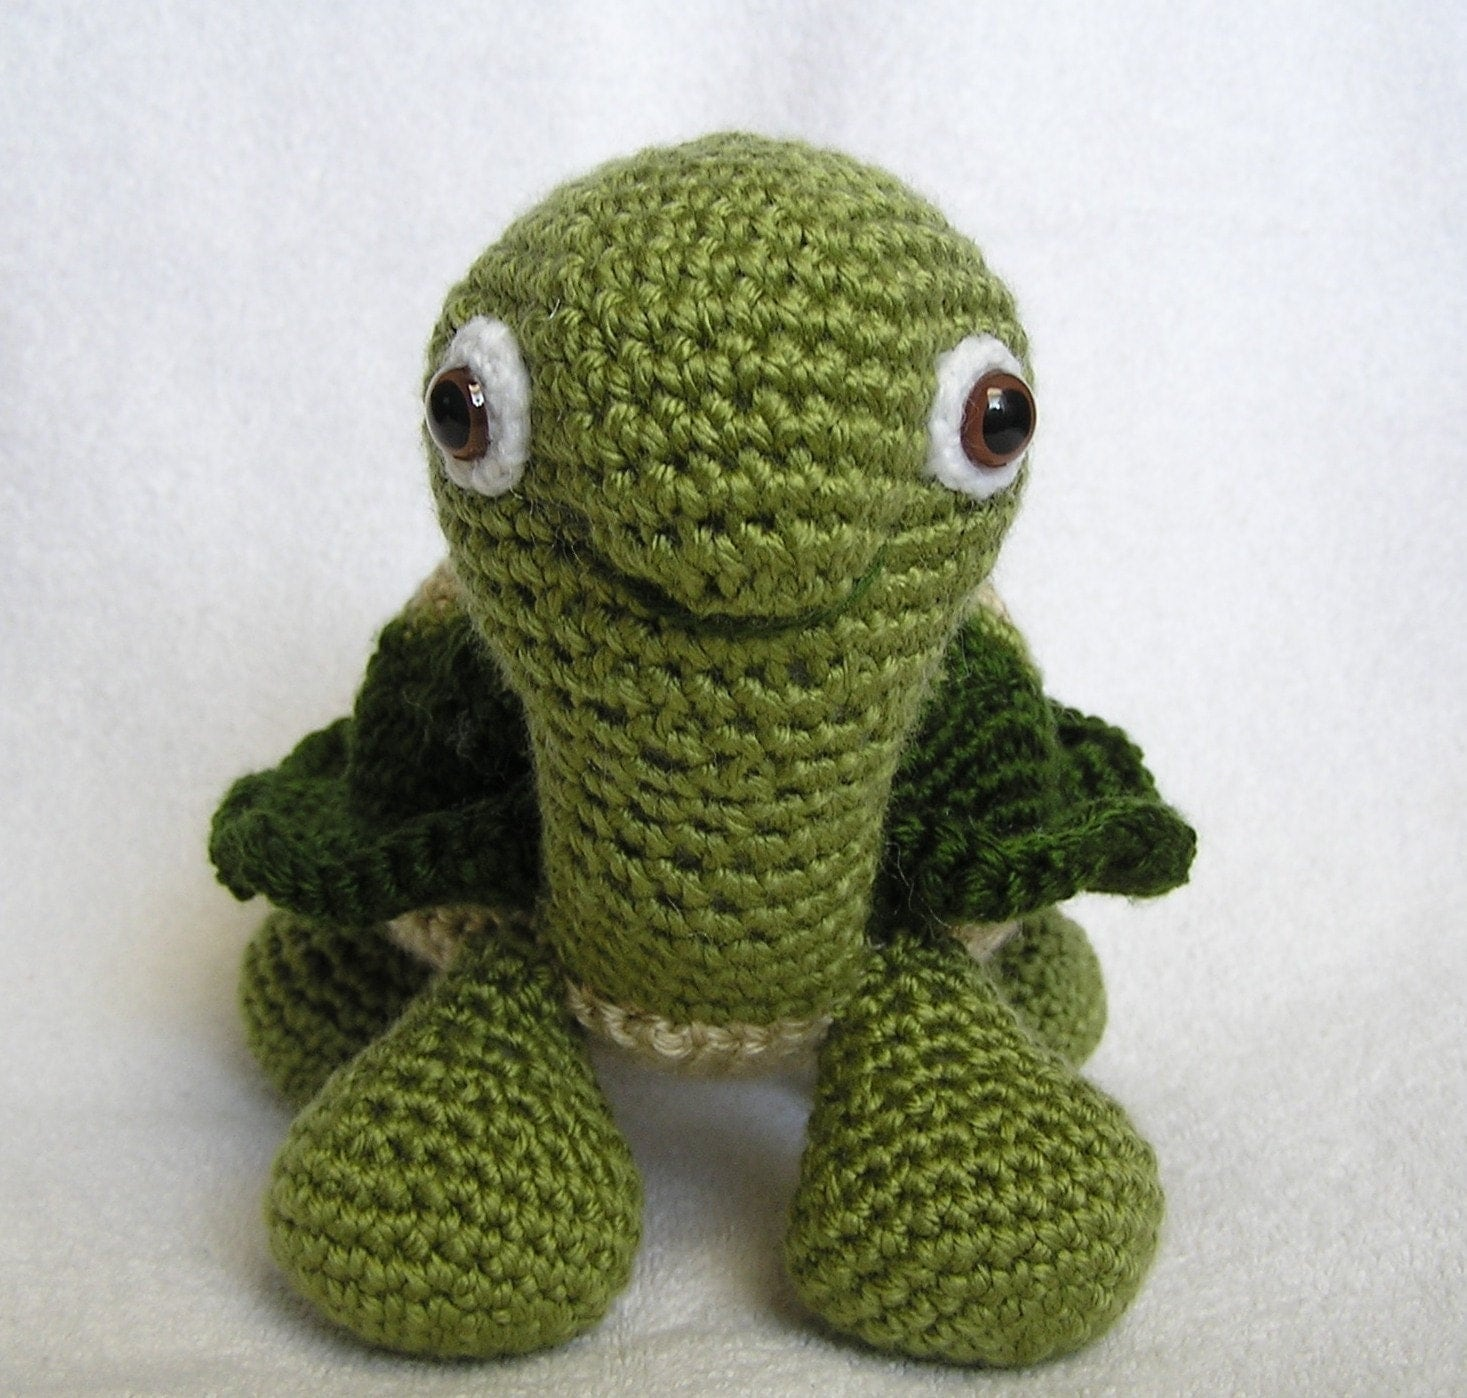 BABY TURTLE PDF Crochet Pattern By Bvoe668 On Etsy